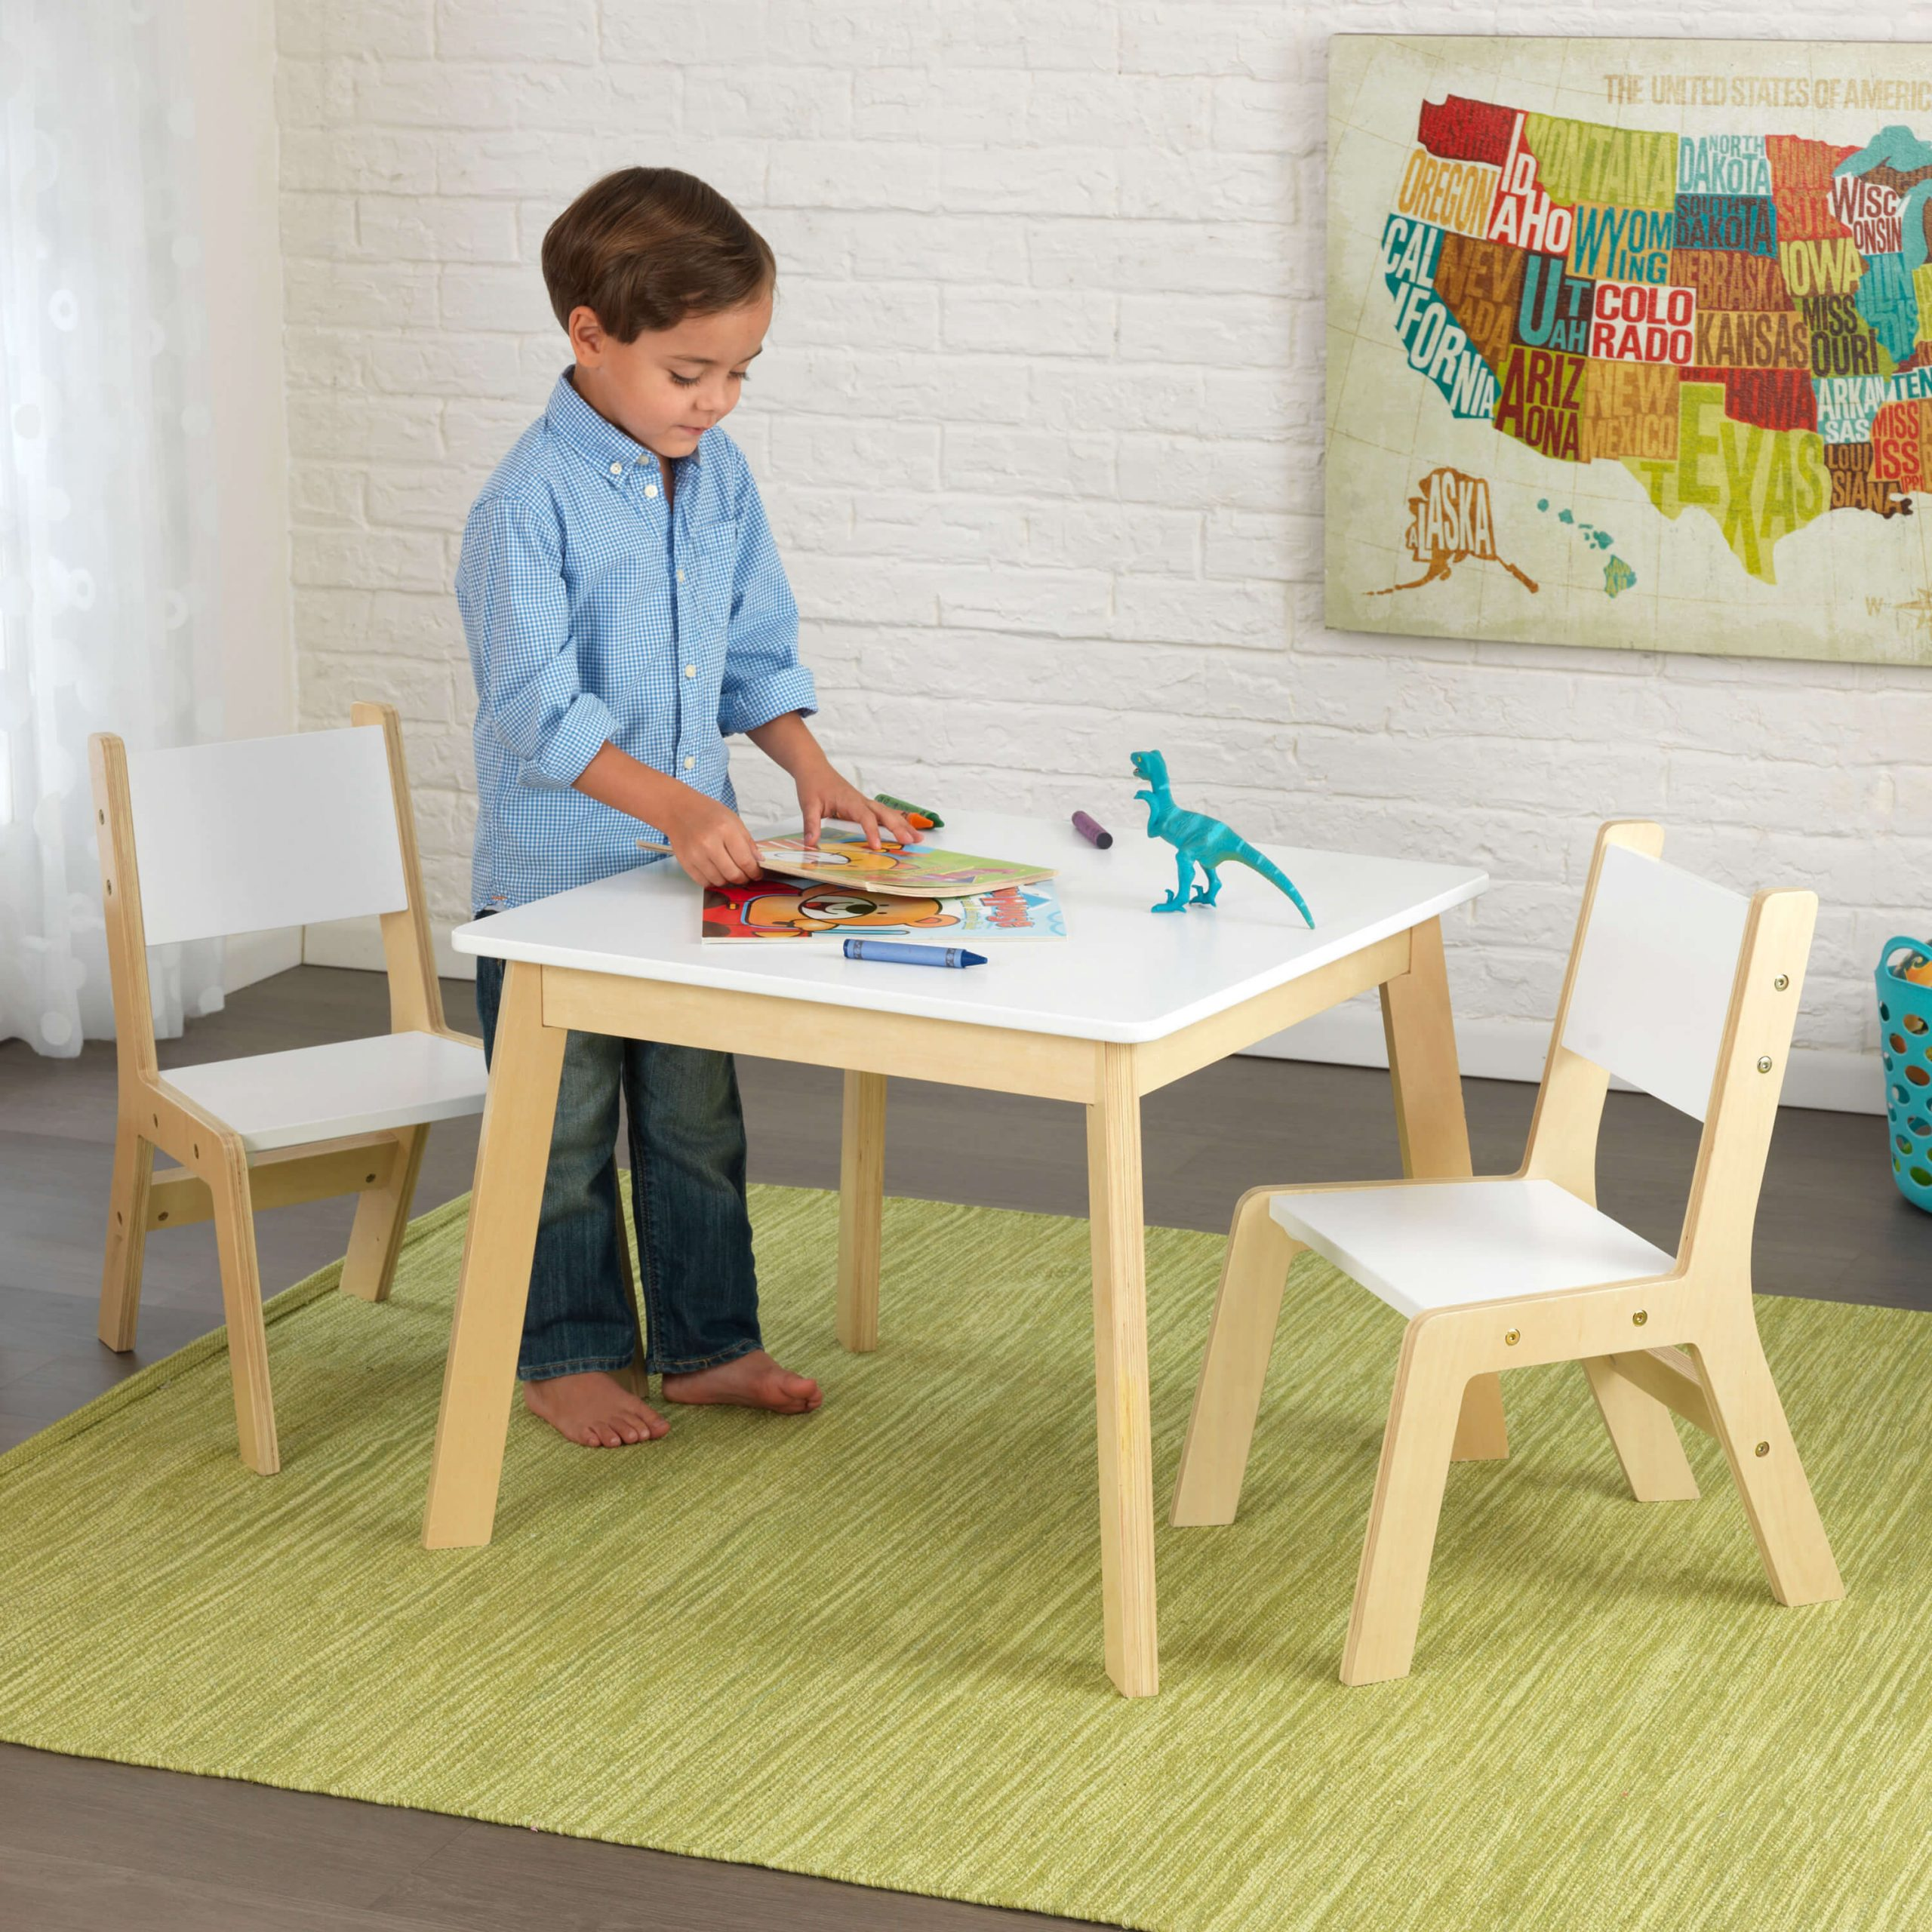 FRENCH LOOK STYLE CHILDRENS WOOD TABLE AND CHAIRS SETS